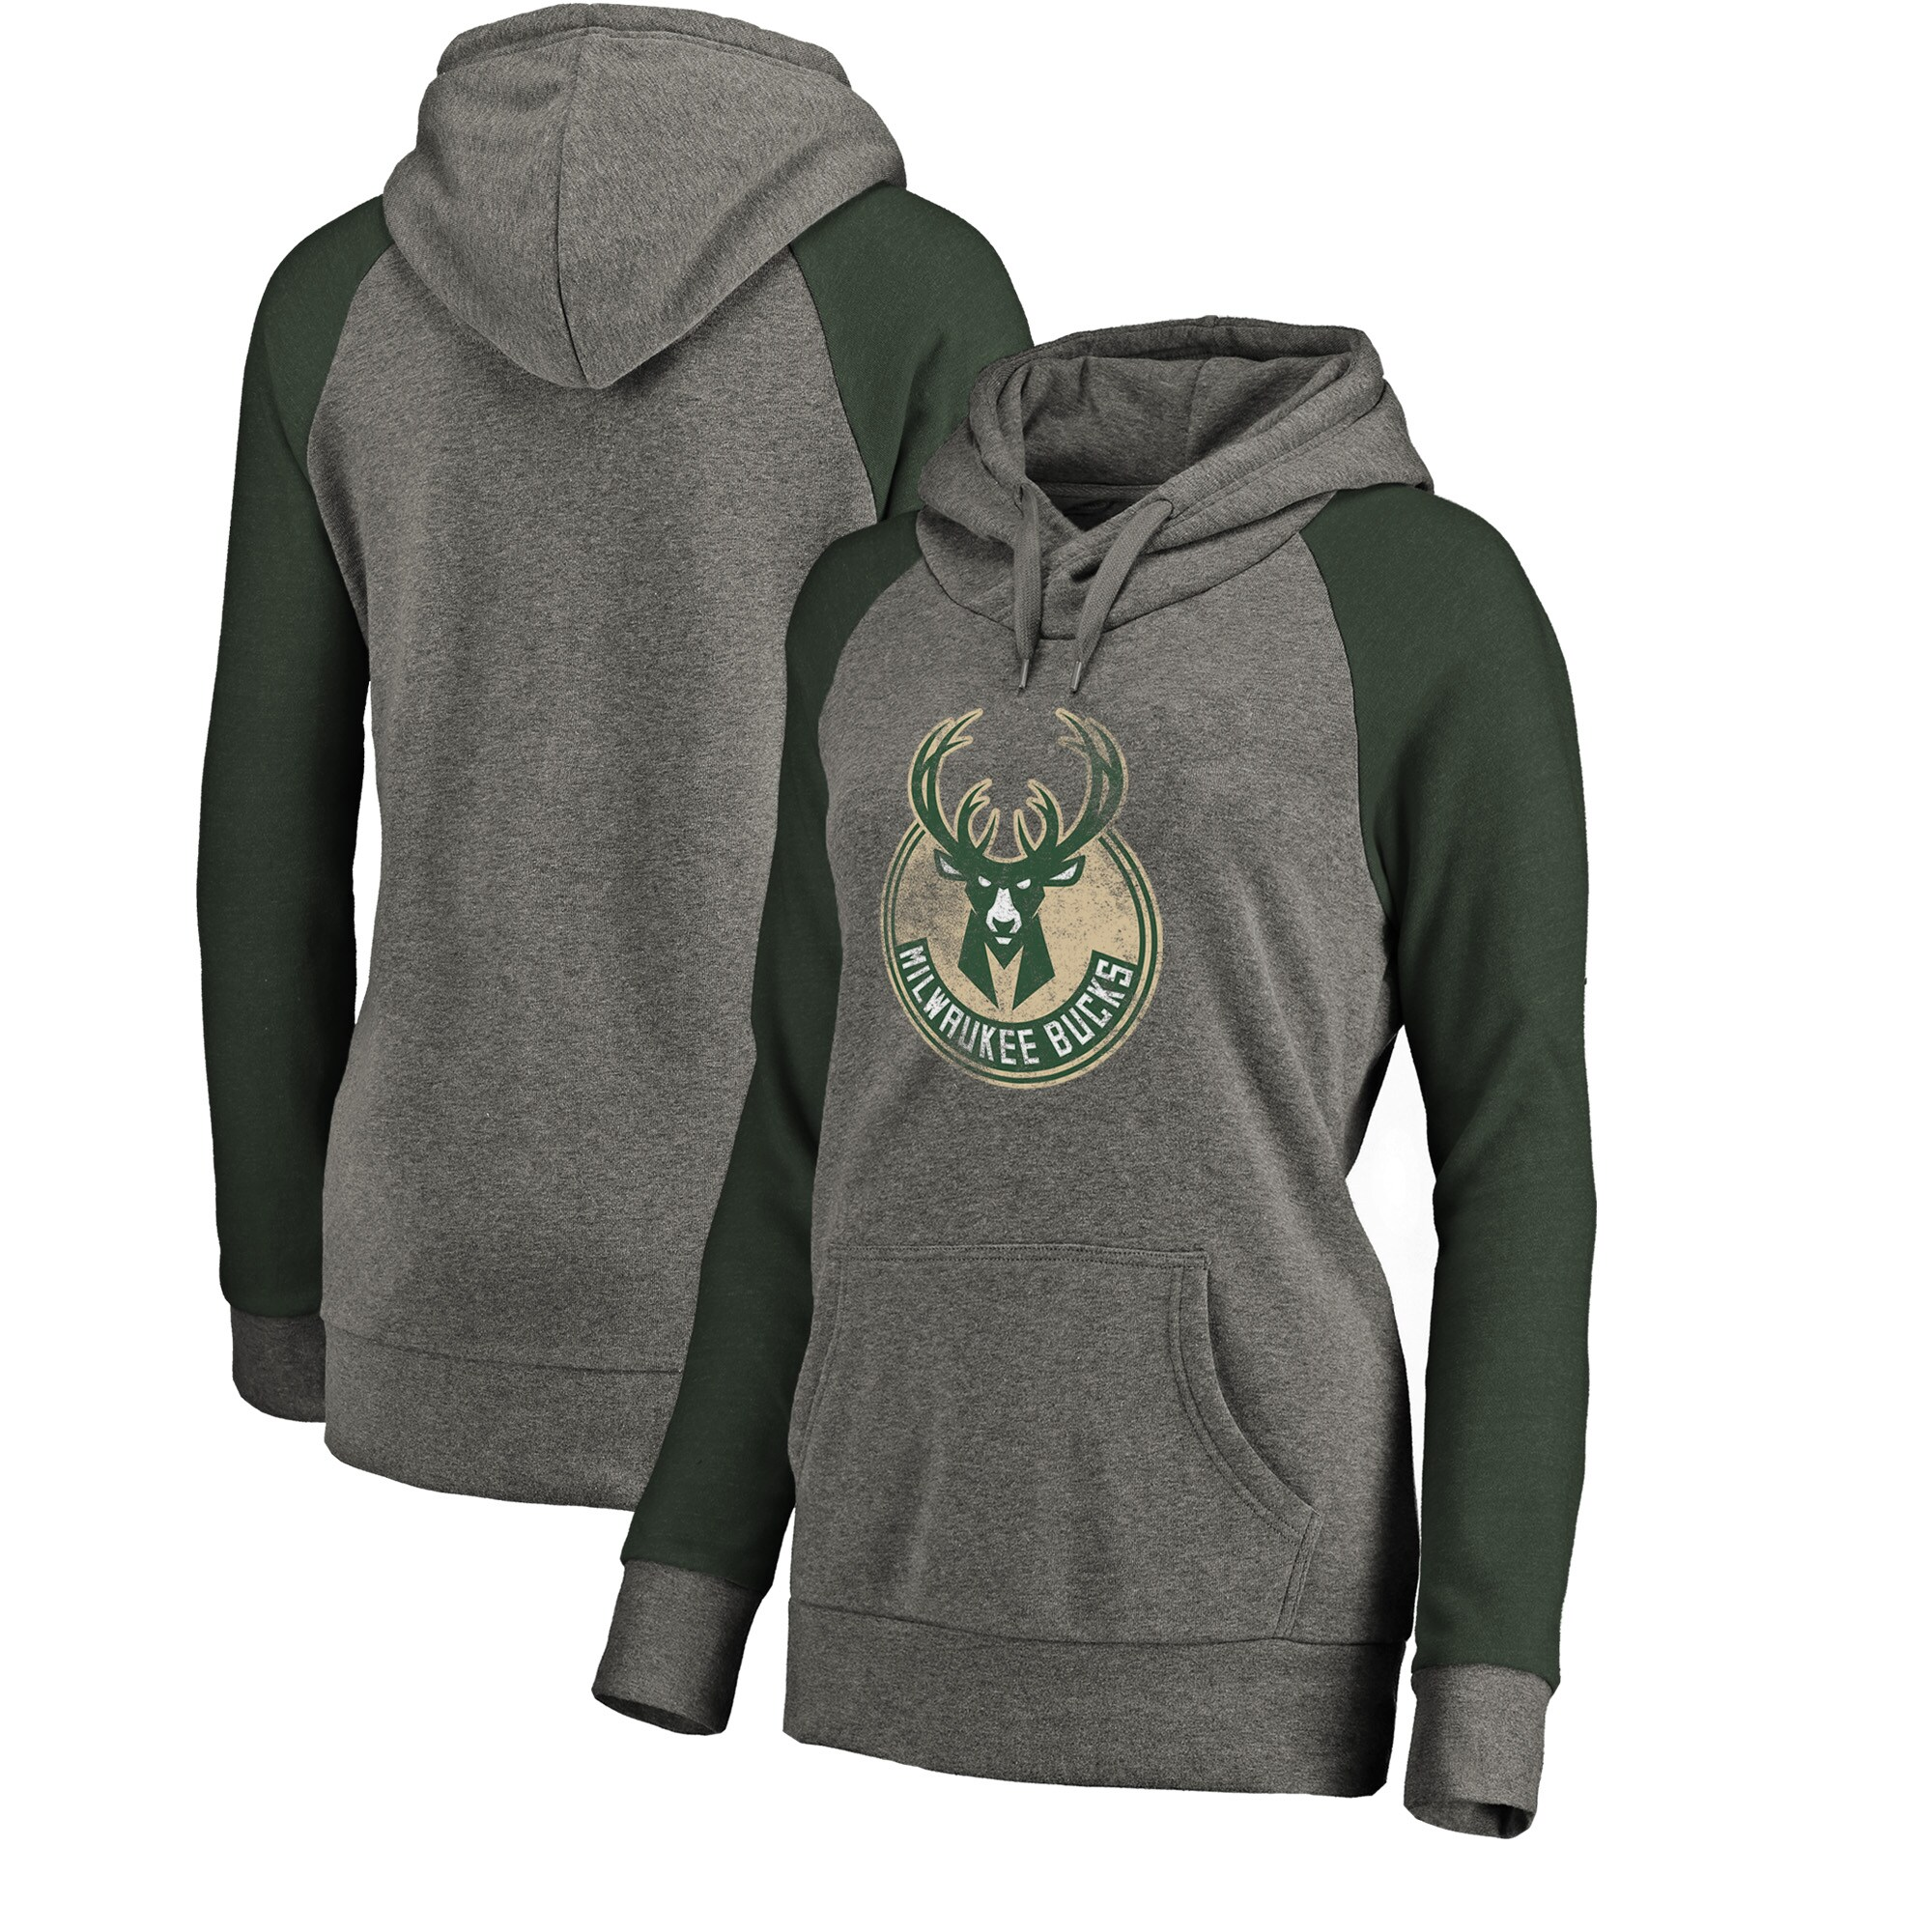 Milwaukee Bucks Fanatics Branded Women's Distressed Logo Tri-Blend Pullover Hoodie - Ash/Green